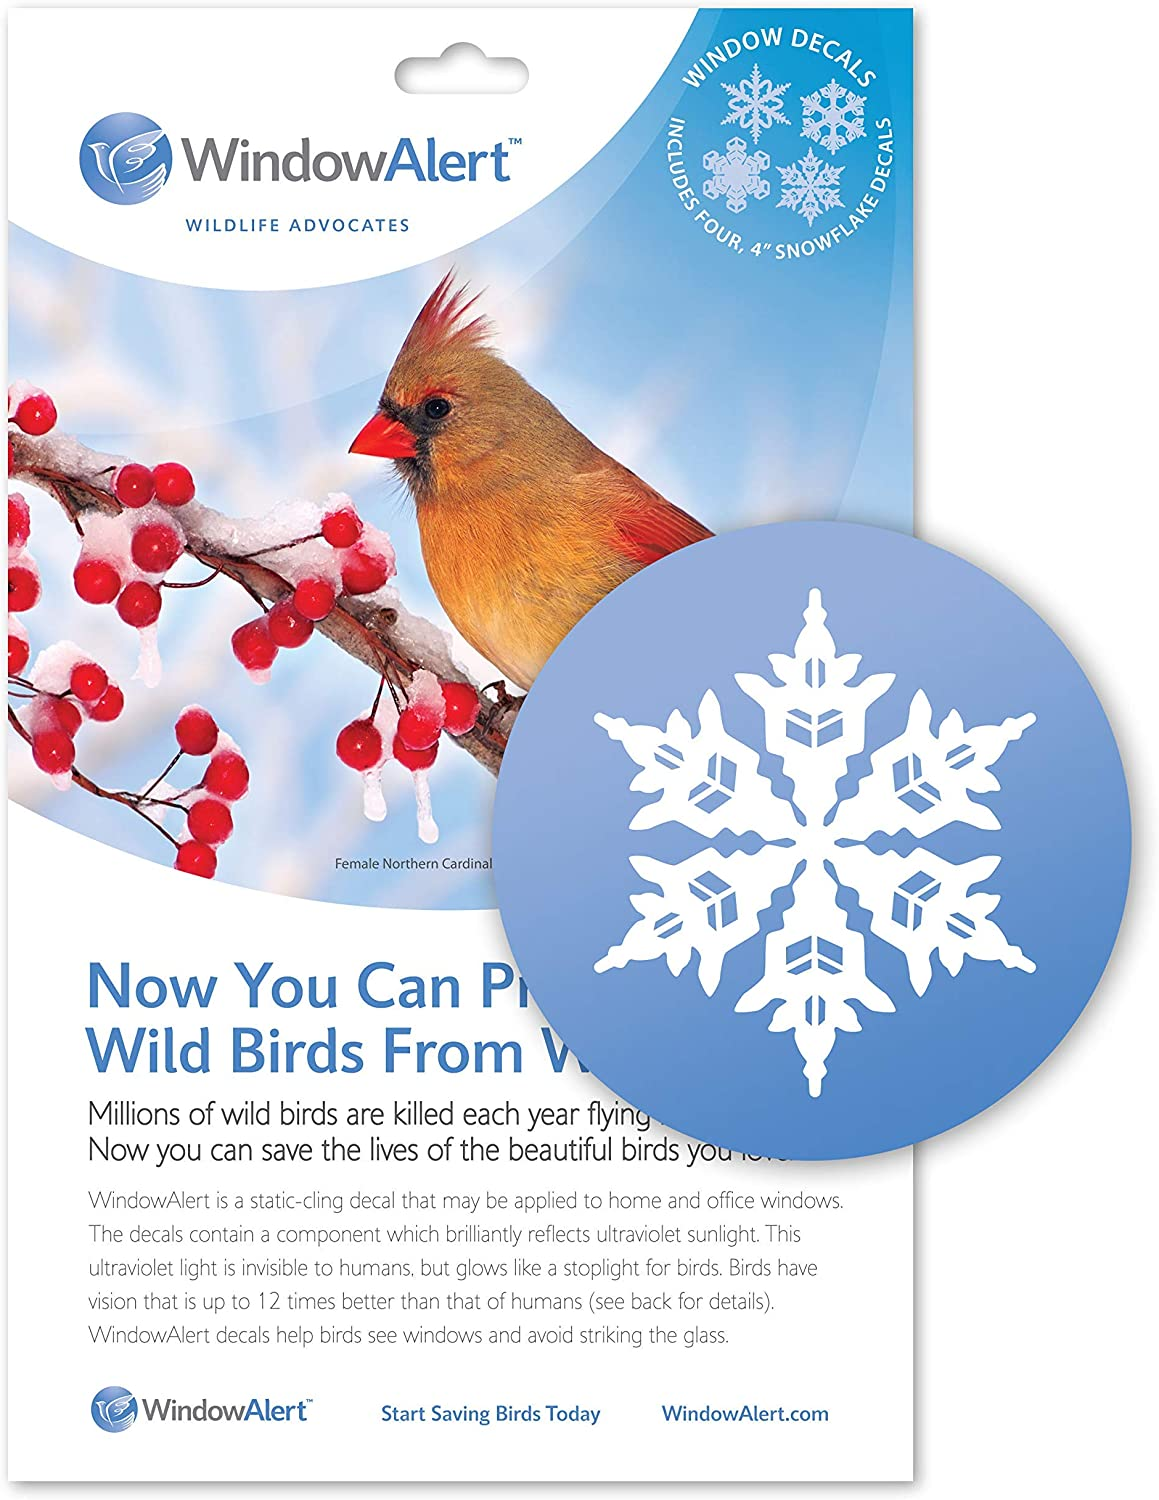 WindowAlert Snowflake Anti-Collision Decal - UV-Reflective Window Decal to Protect Wild Birds from Glass Collisions